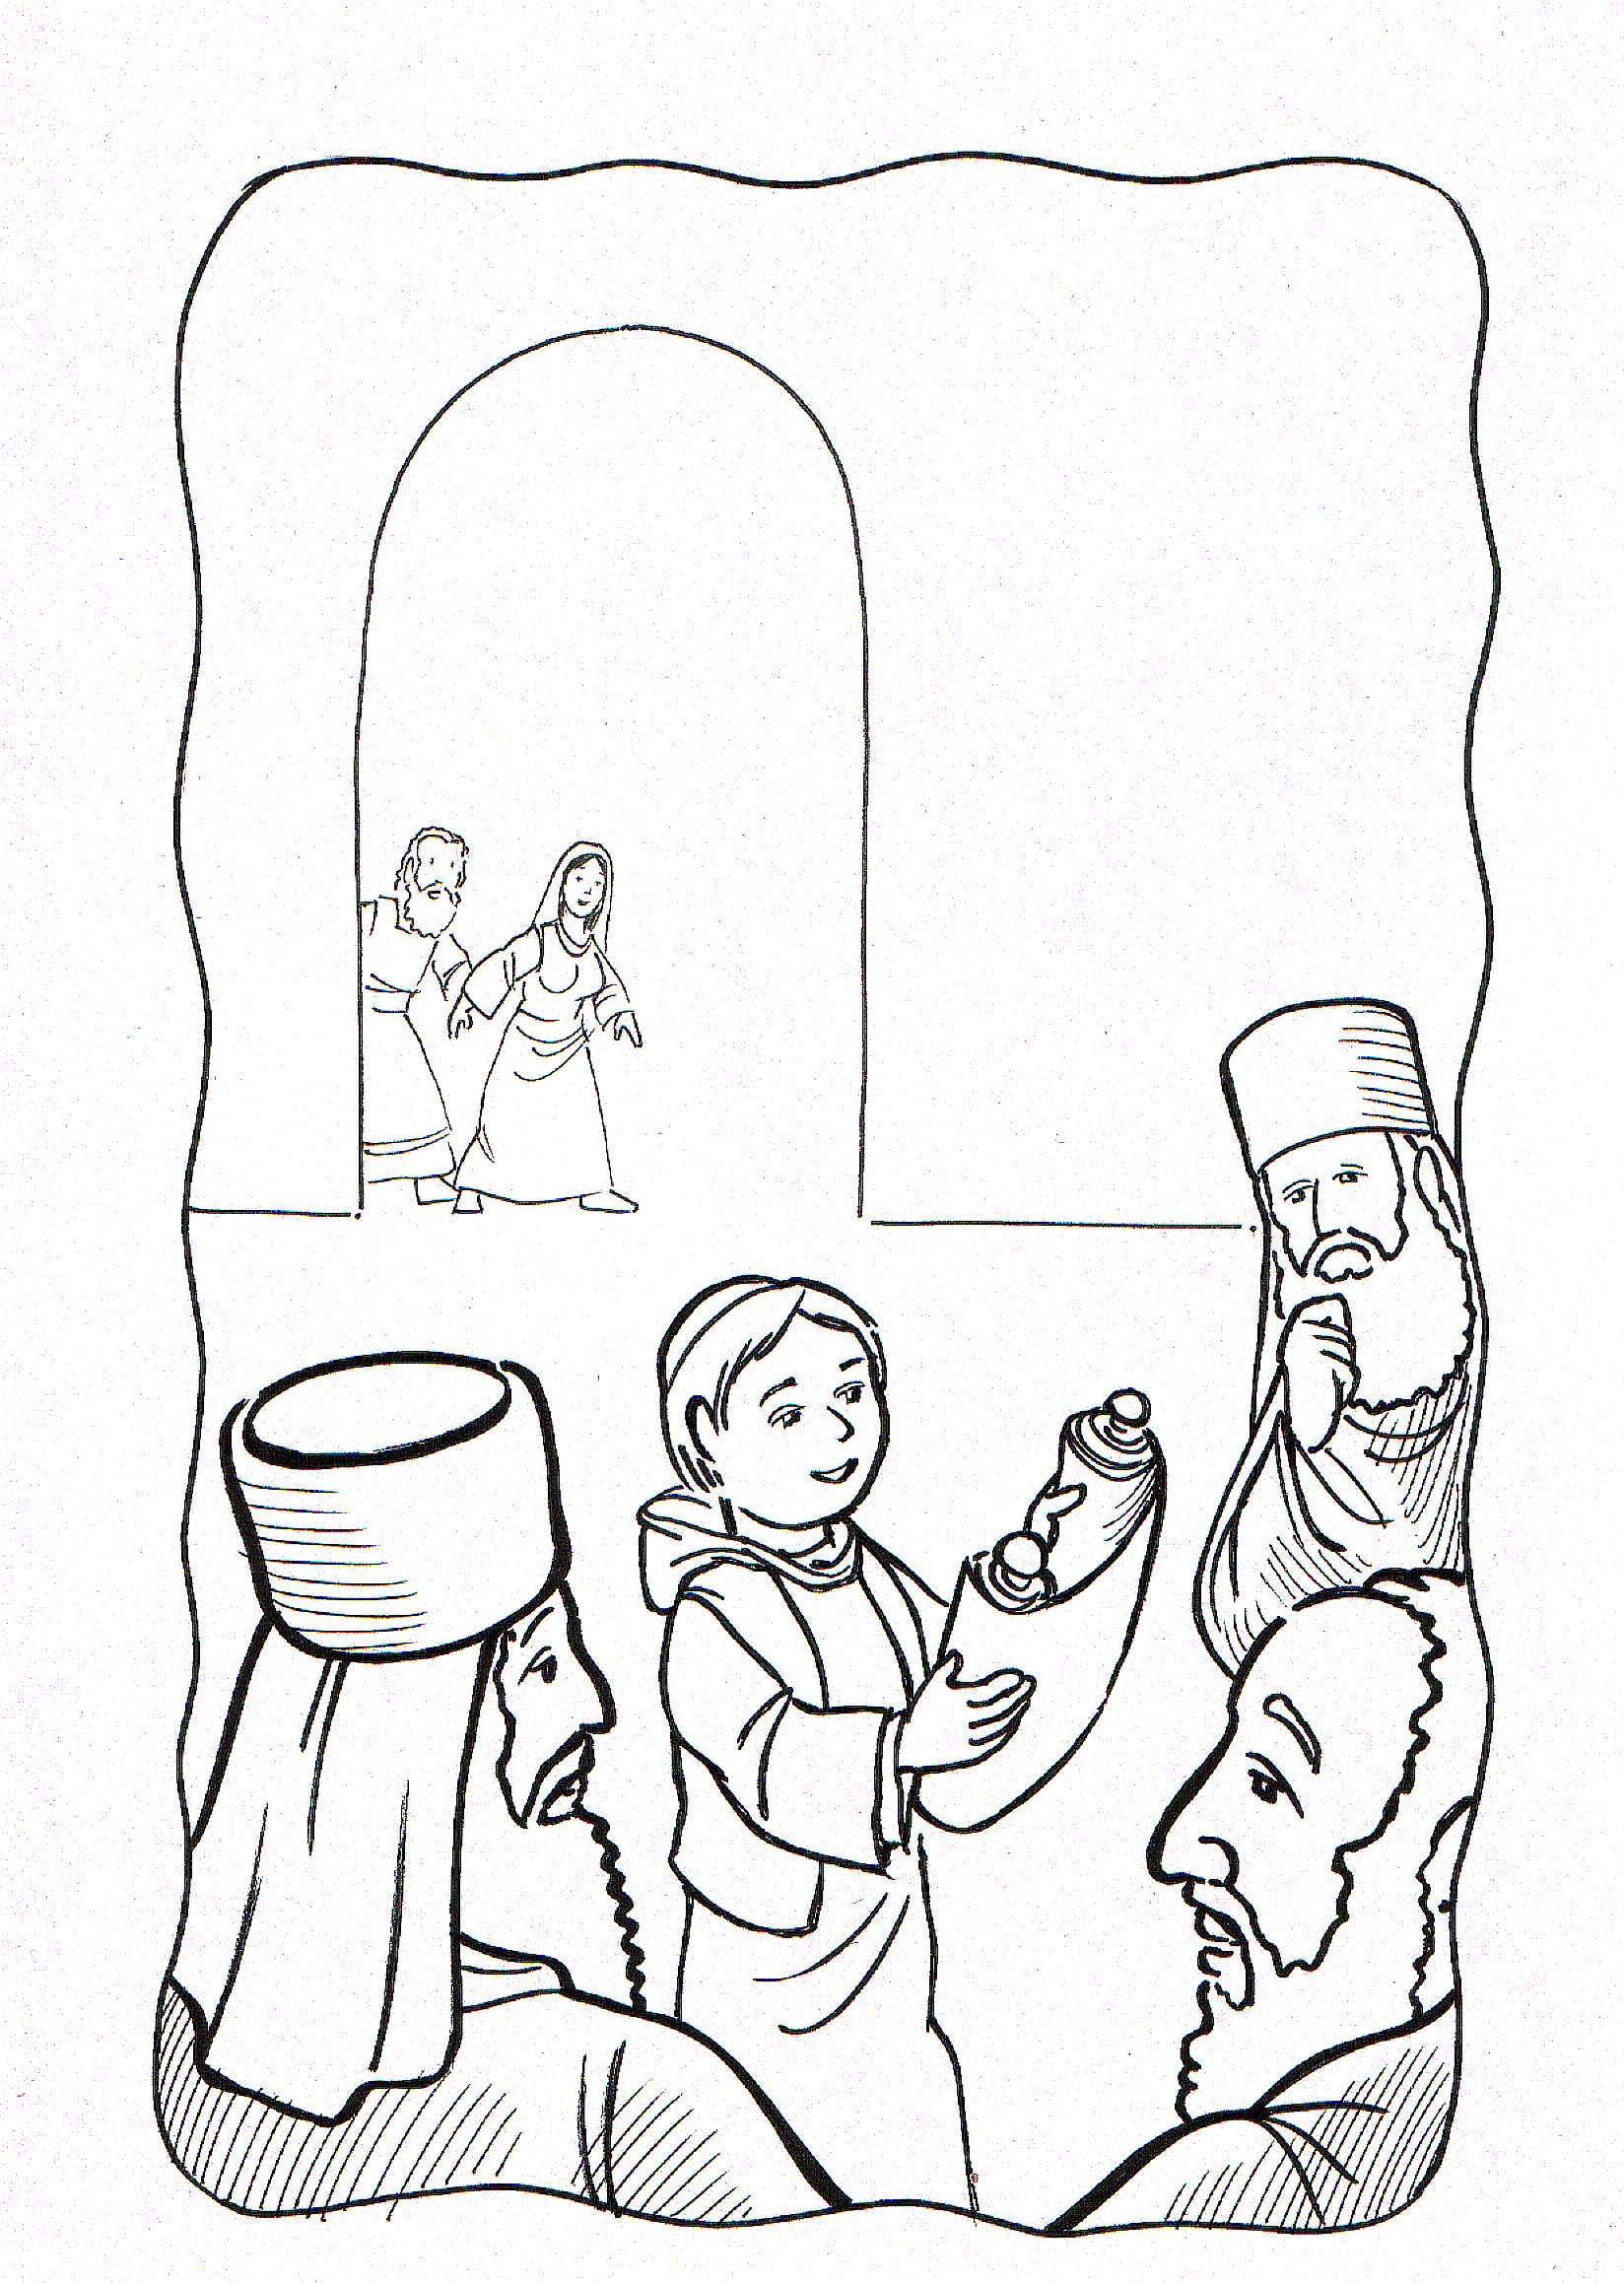 Free coloring pages of 12 year old jesus in the temple for 12 year old jesus in the temple coloring page